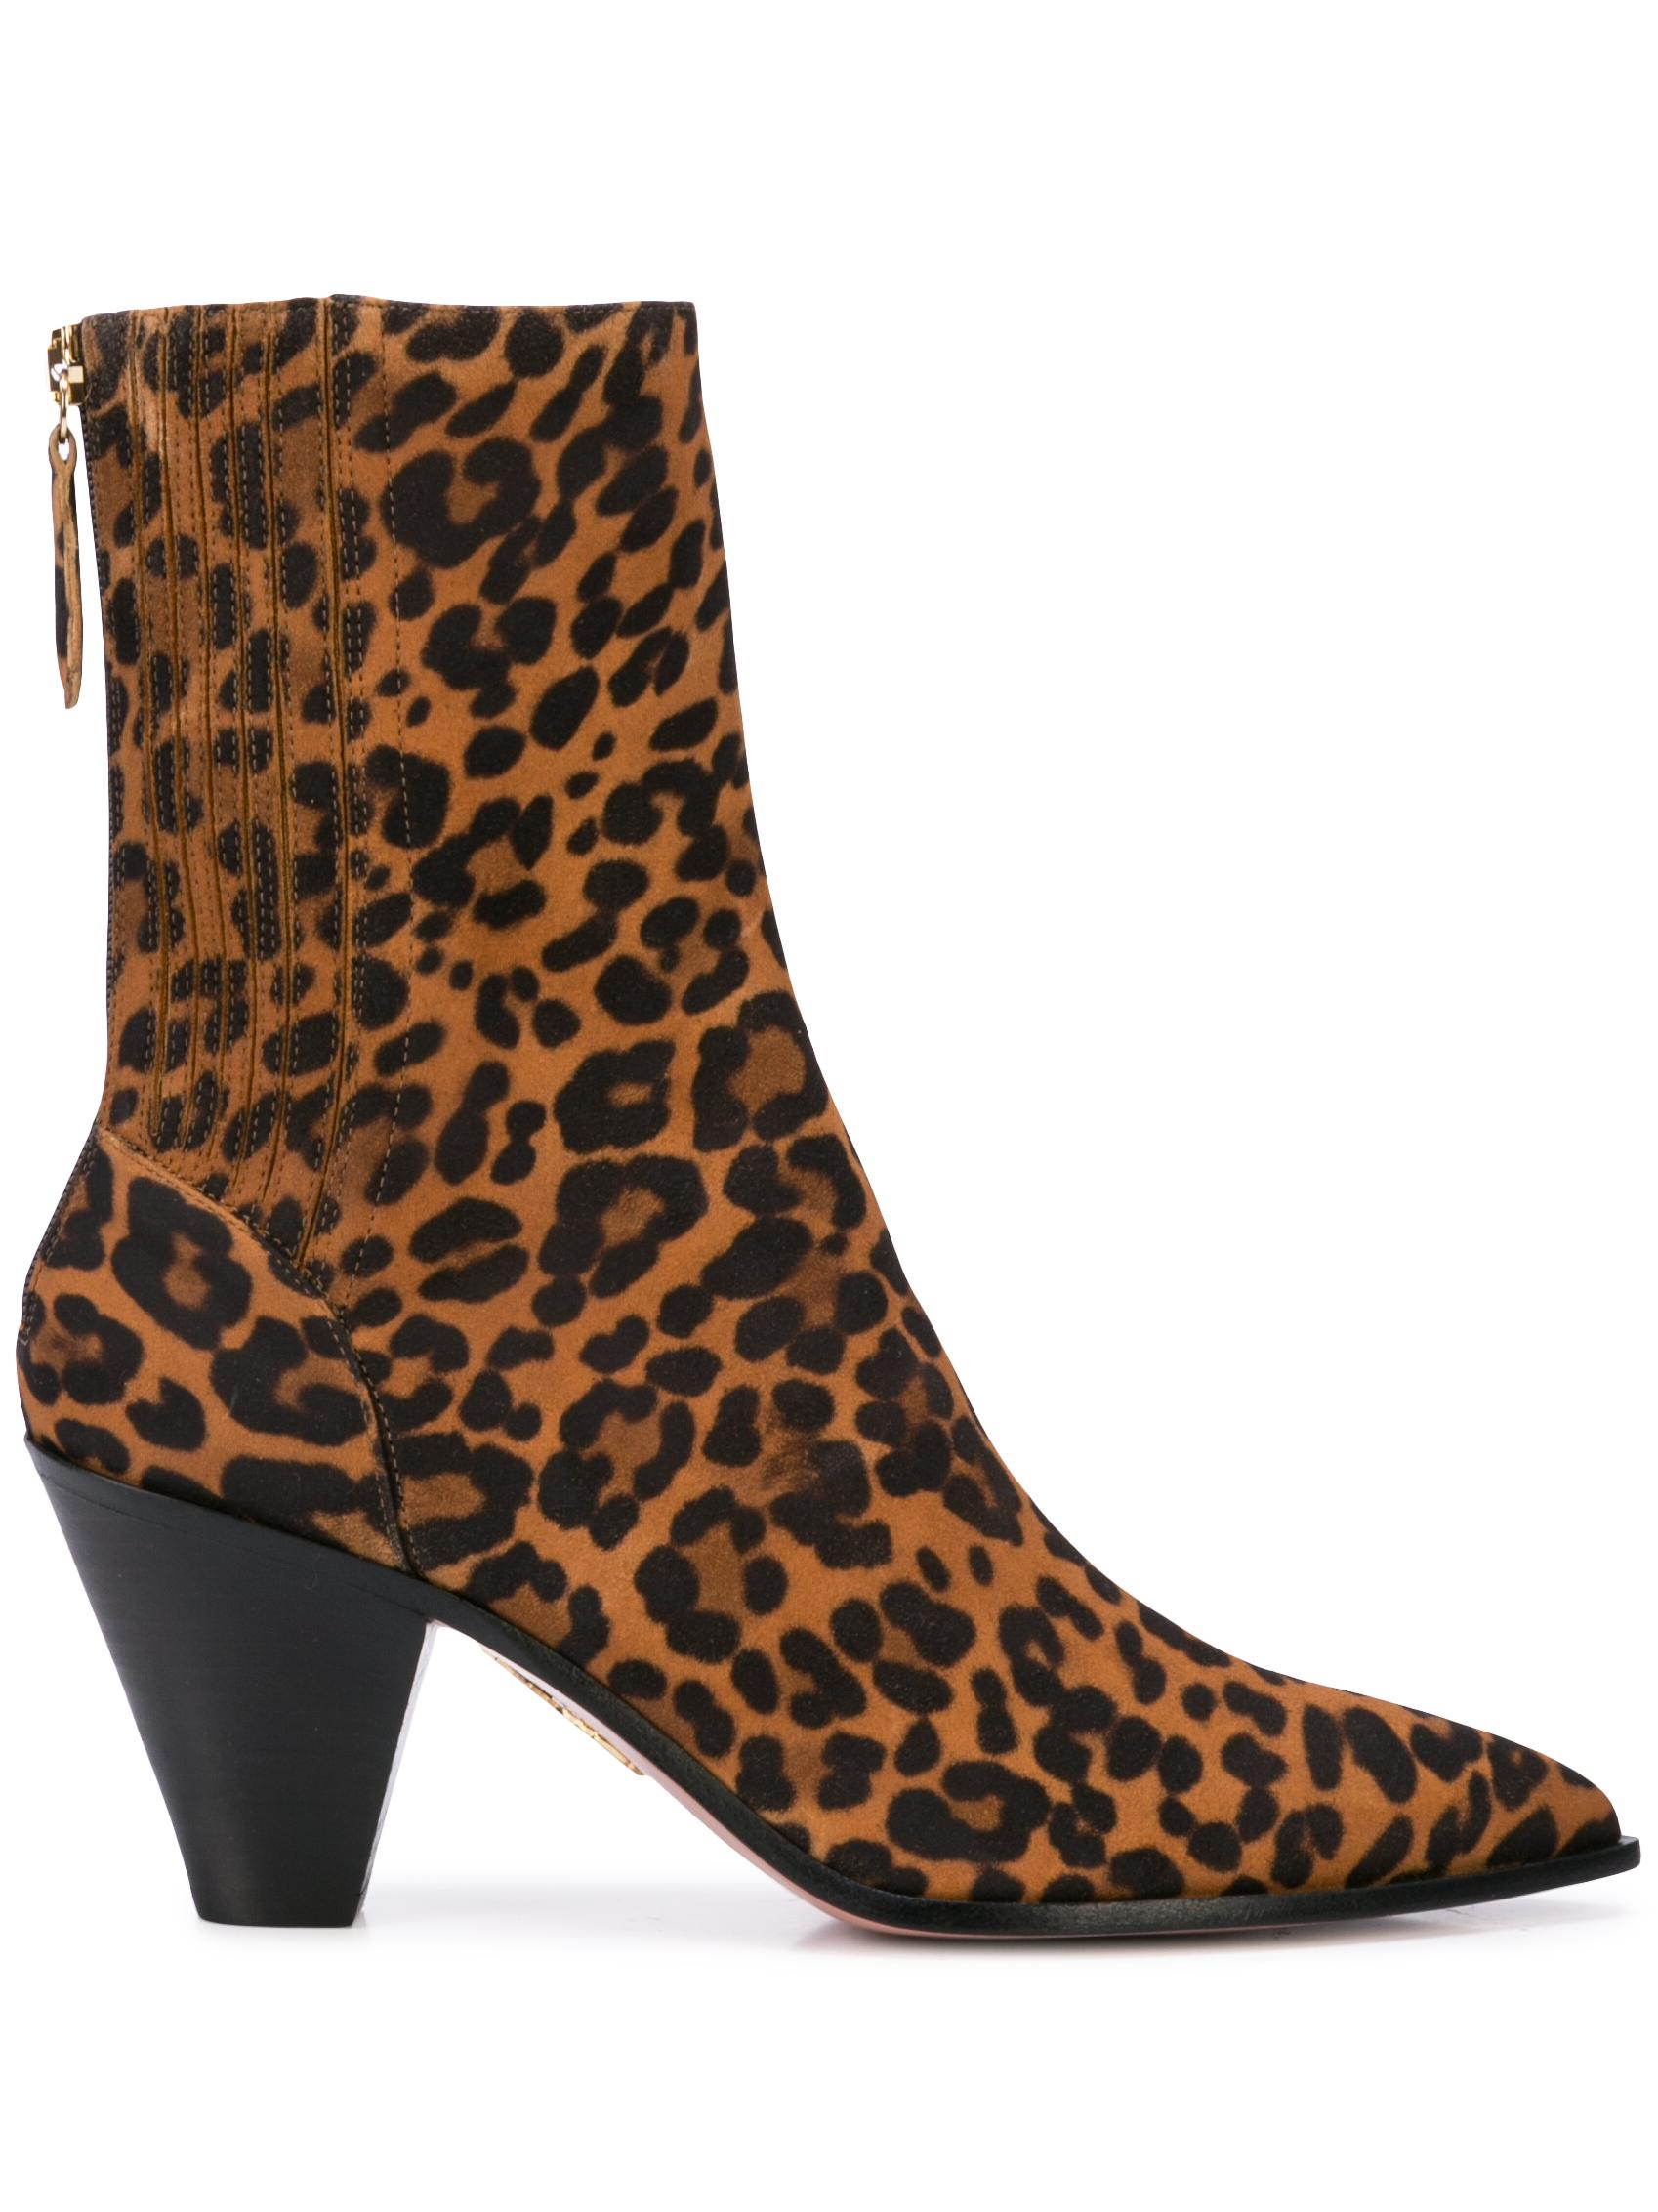 Saint Honore ' 70mm ' Jaguar Suede Bootie Item # SHOMIDB2-JAS